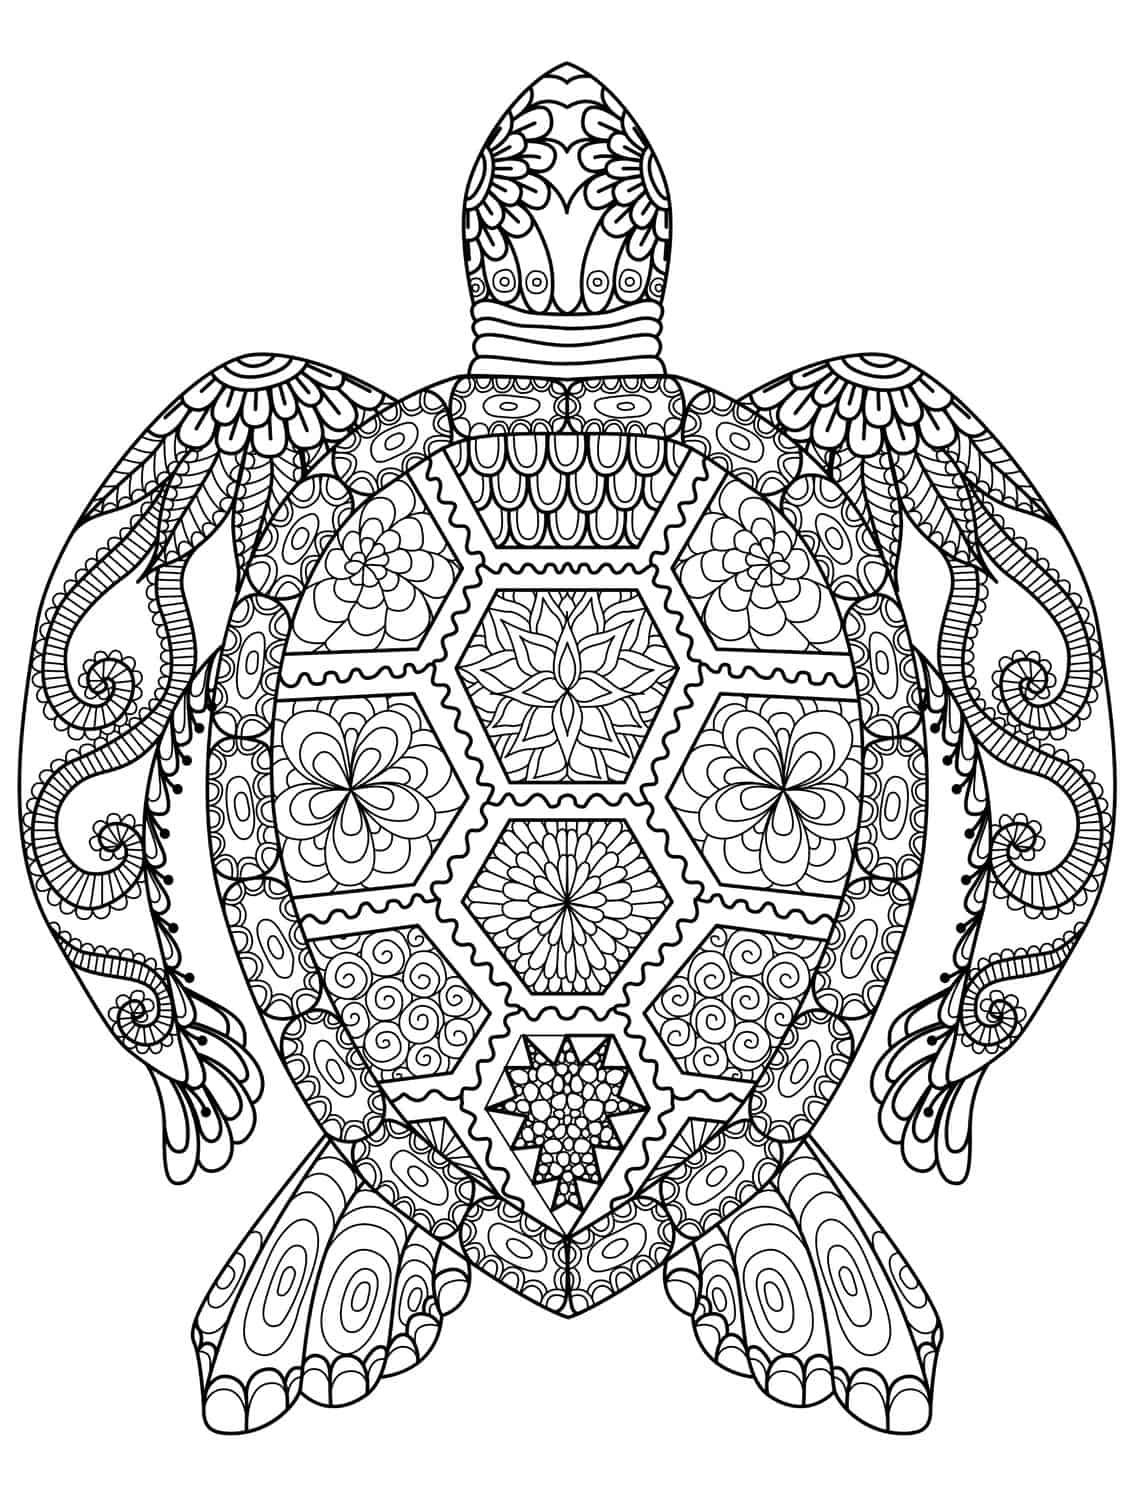 coloring prints for adults printable abstract pattern adult coloring pages 01 for coloring adults prints